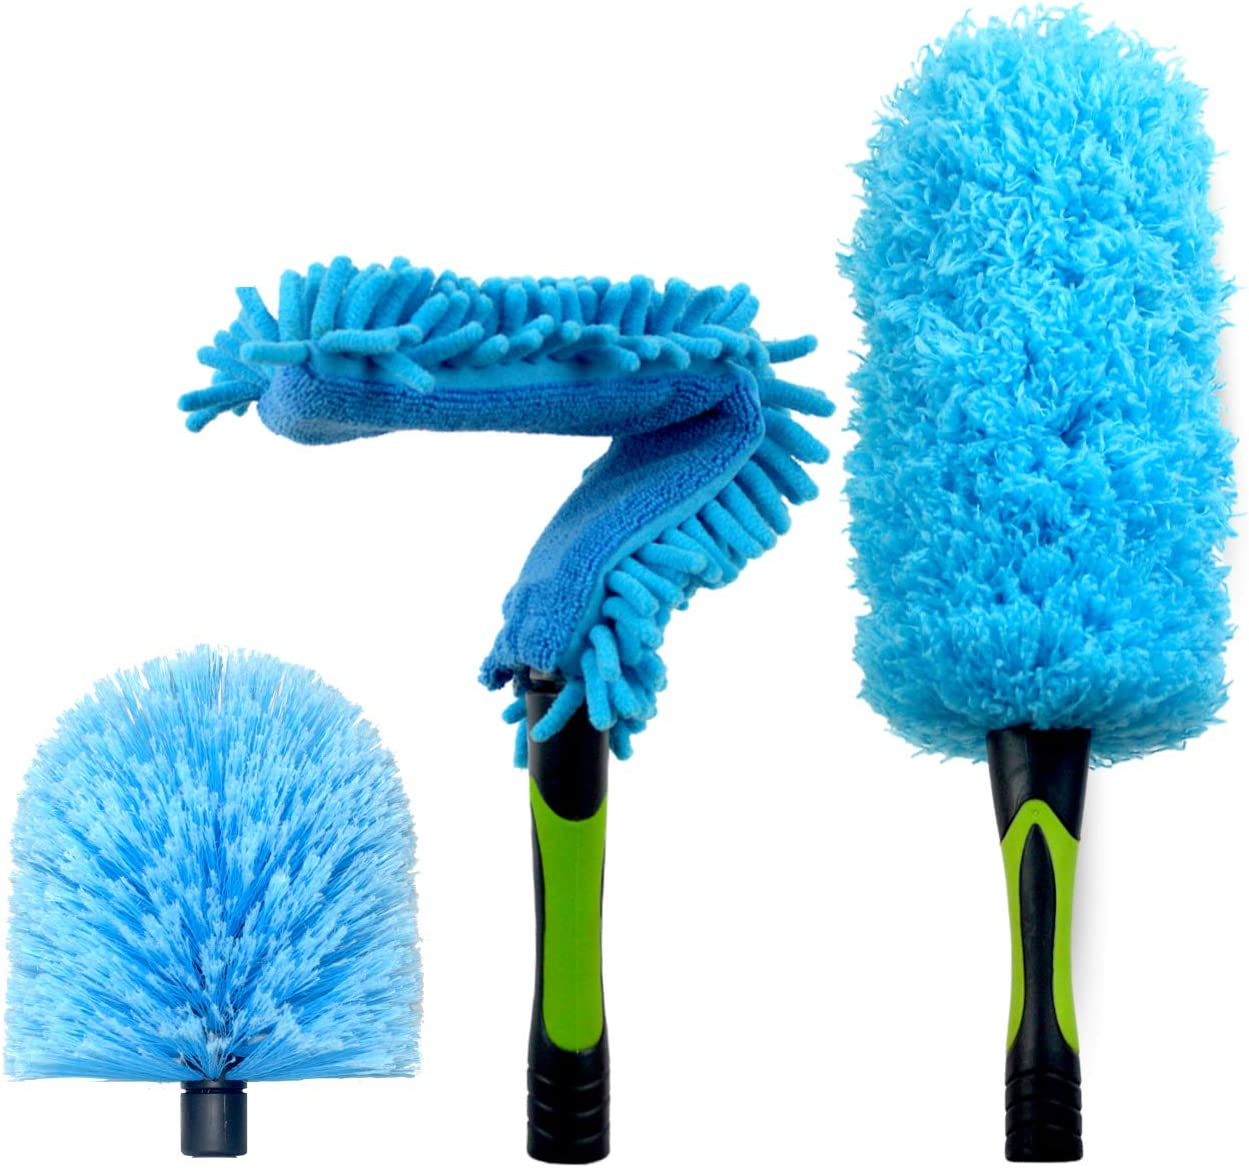 EVERSPROUT Duster 3-Pack   Hand-Packaged Cobweb Duster, Microfiber Feather Duster, Flexible Ceiling Fan Duster   Twists onto Standard 3/4 inch ACME Threaded Poles (Pole Sold Separately)(Soft Bristles)